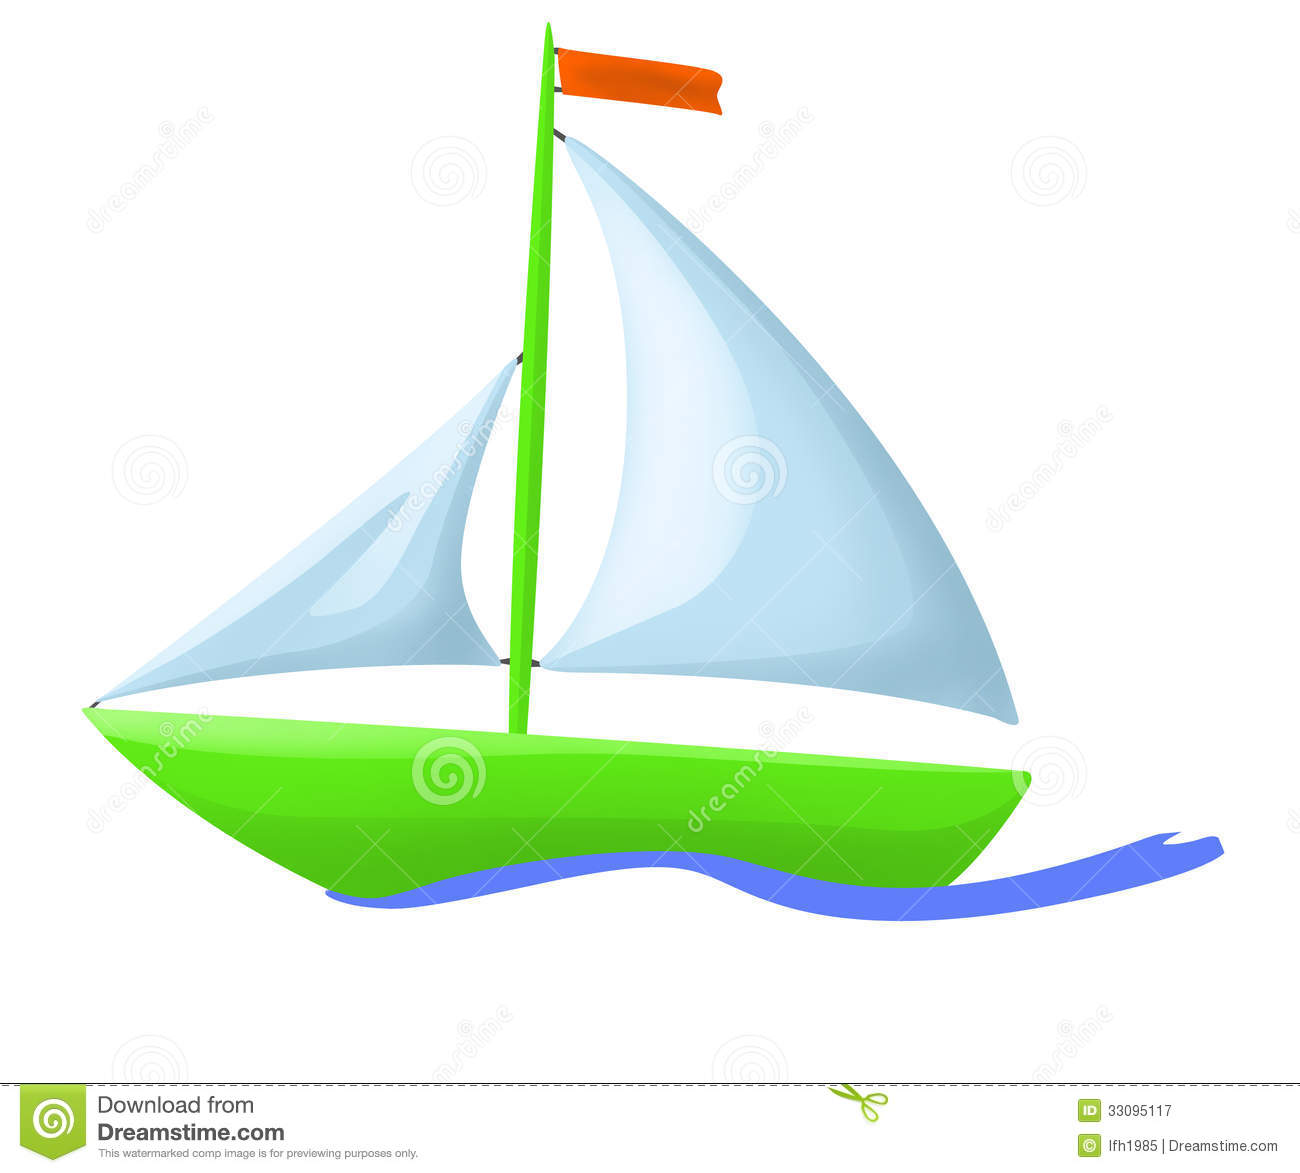 Illustration Of Green Floating Boat Royalty Free Stock ...